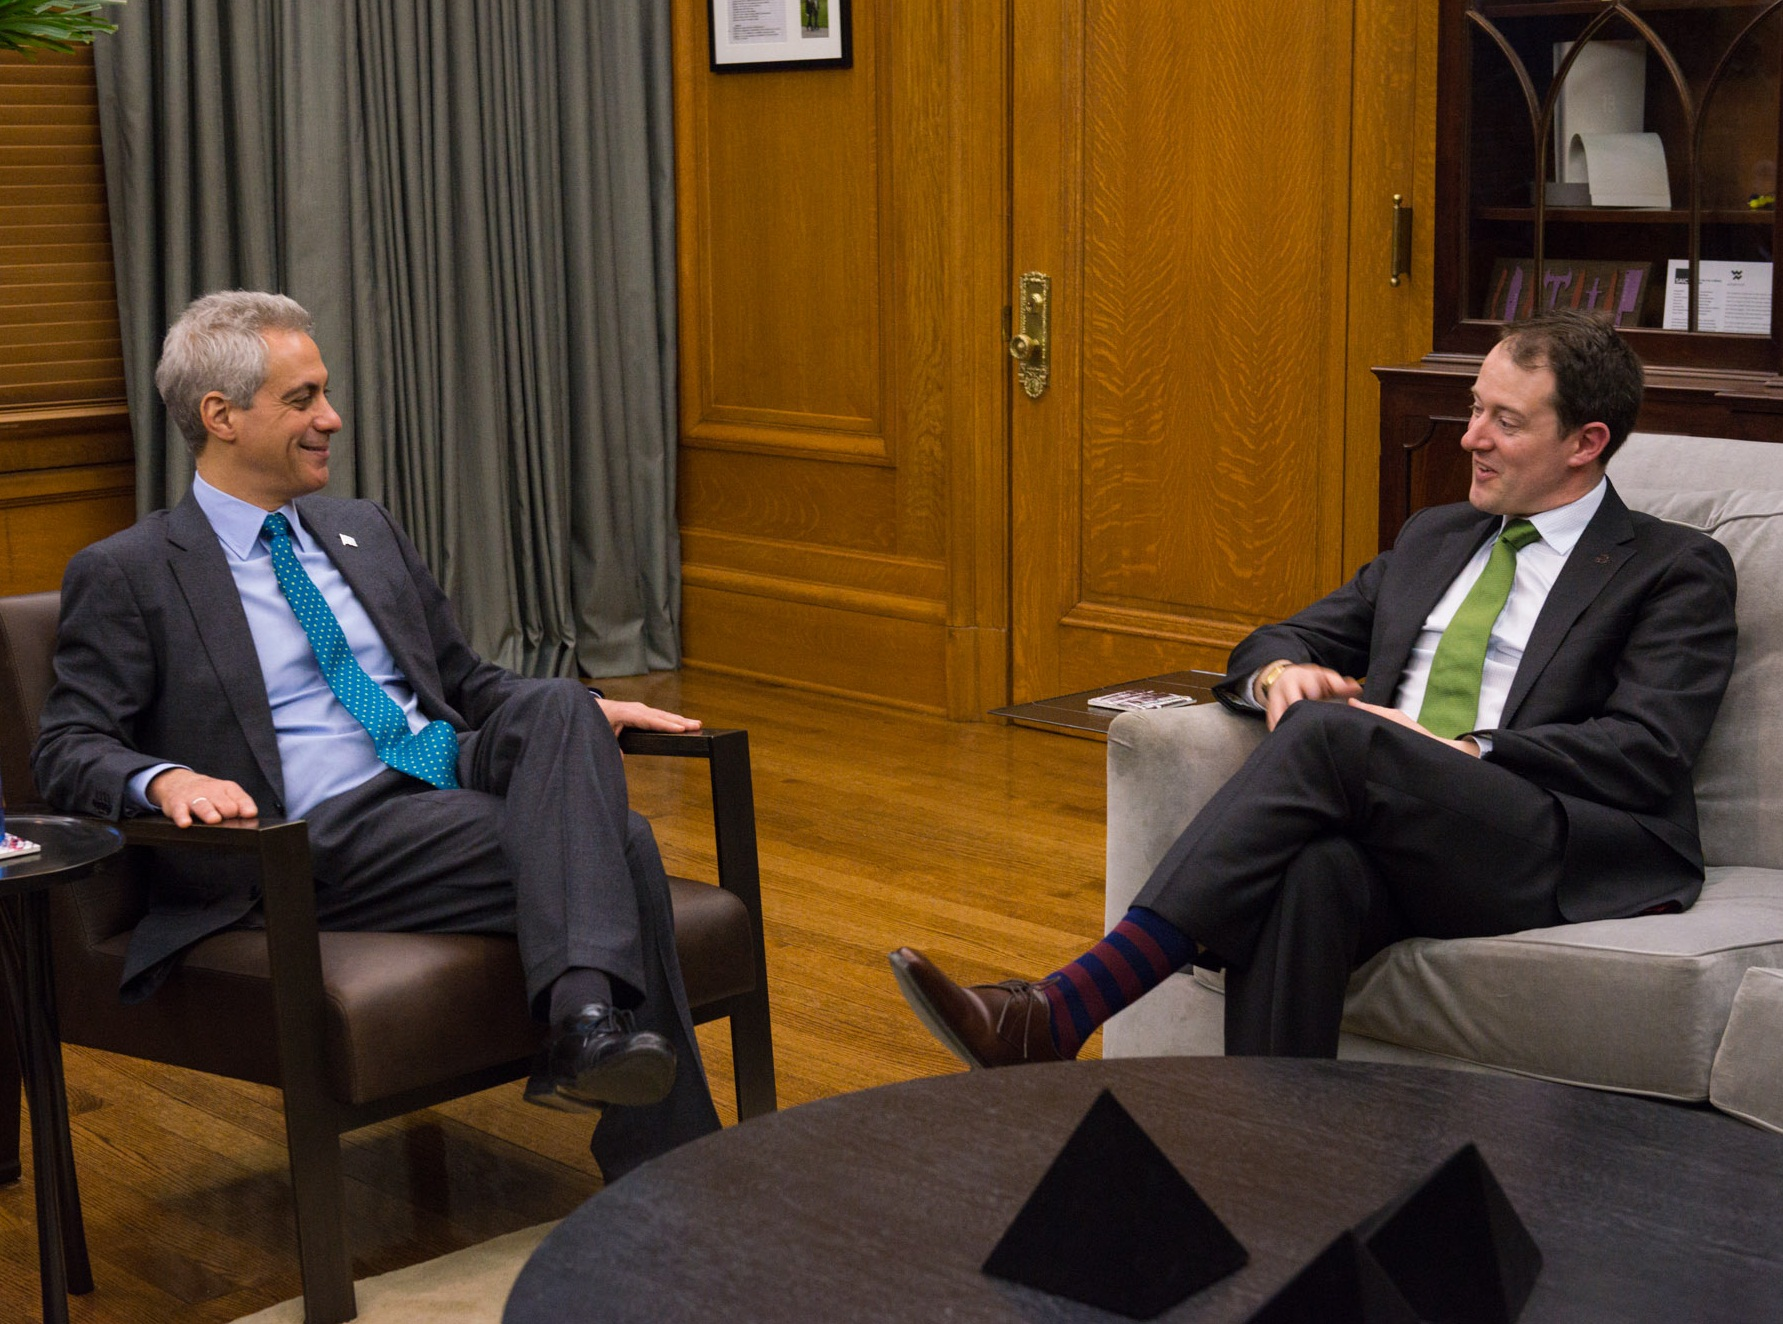 Mayor Emanuel welcomes the Irish Minister for Enterprise and Innovation, Seán Sherlock, to Chicago.